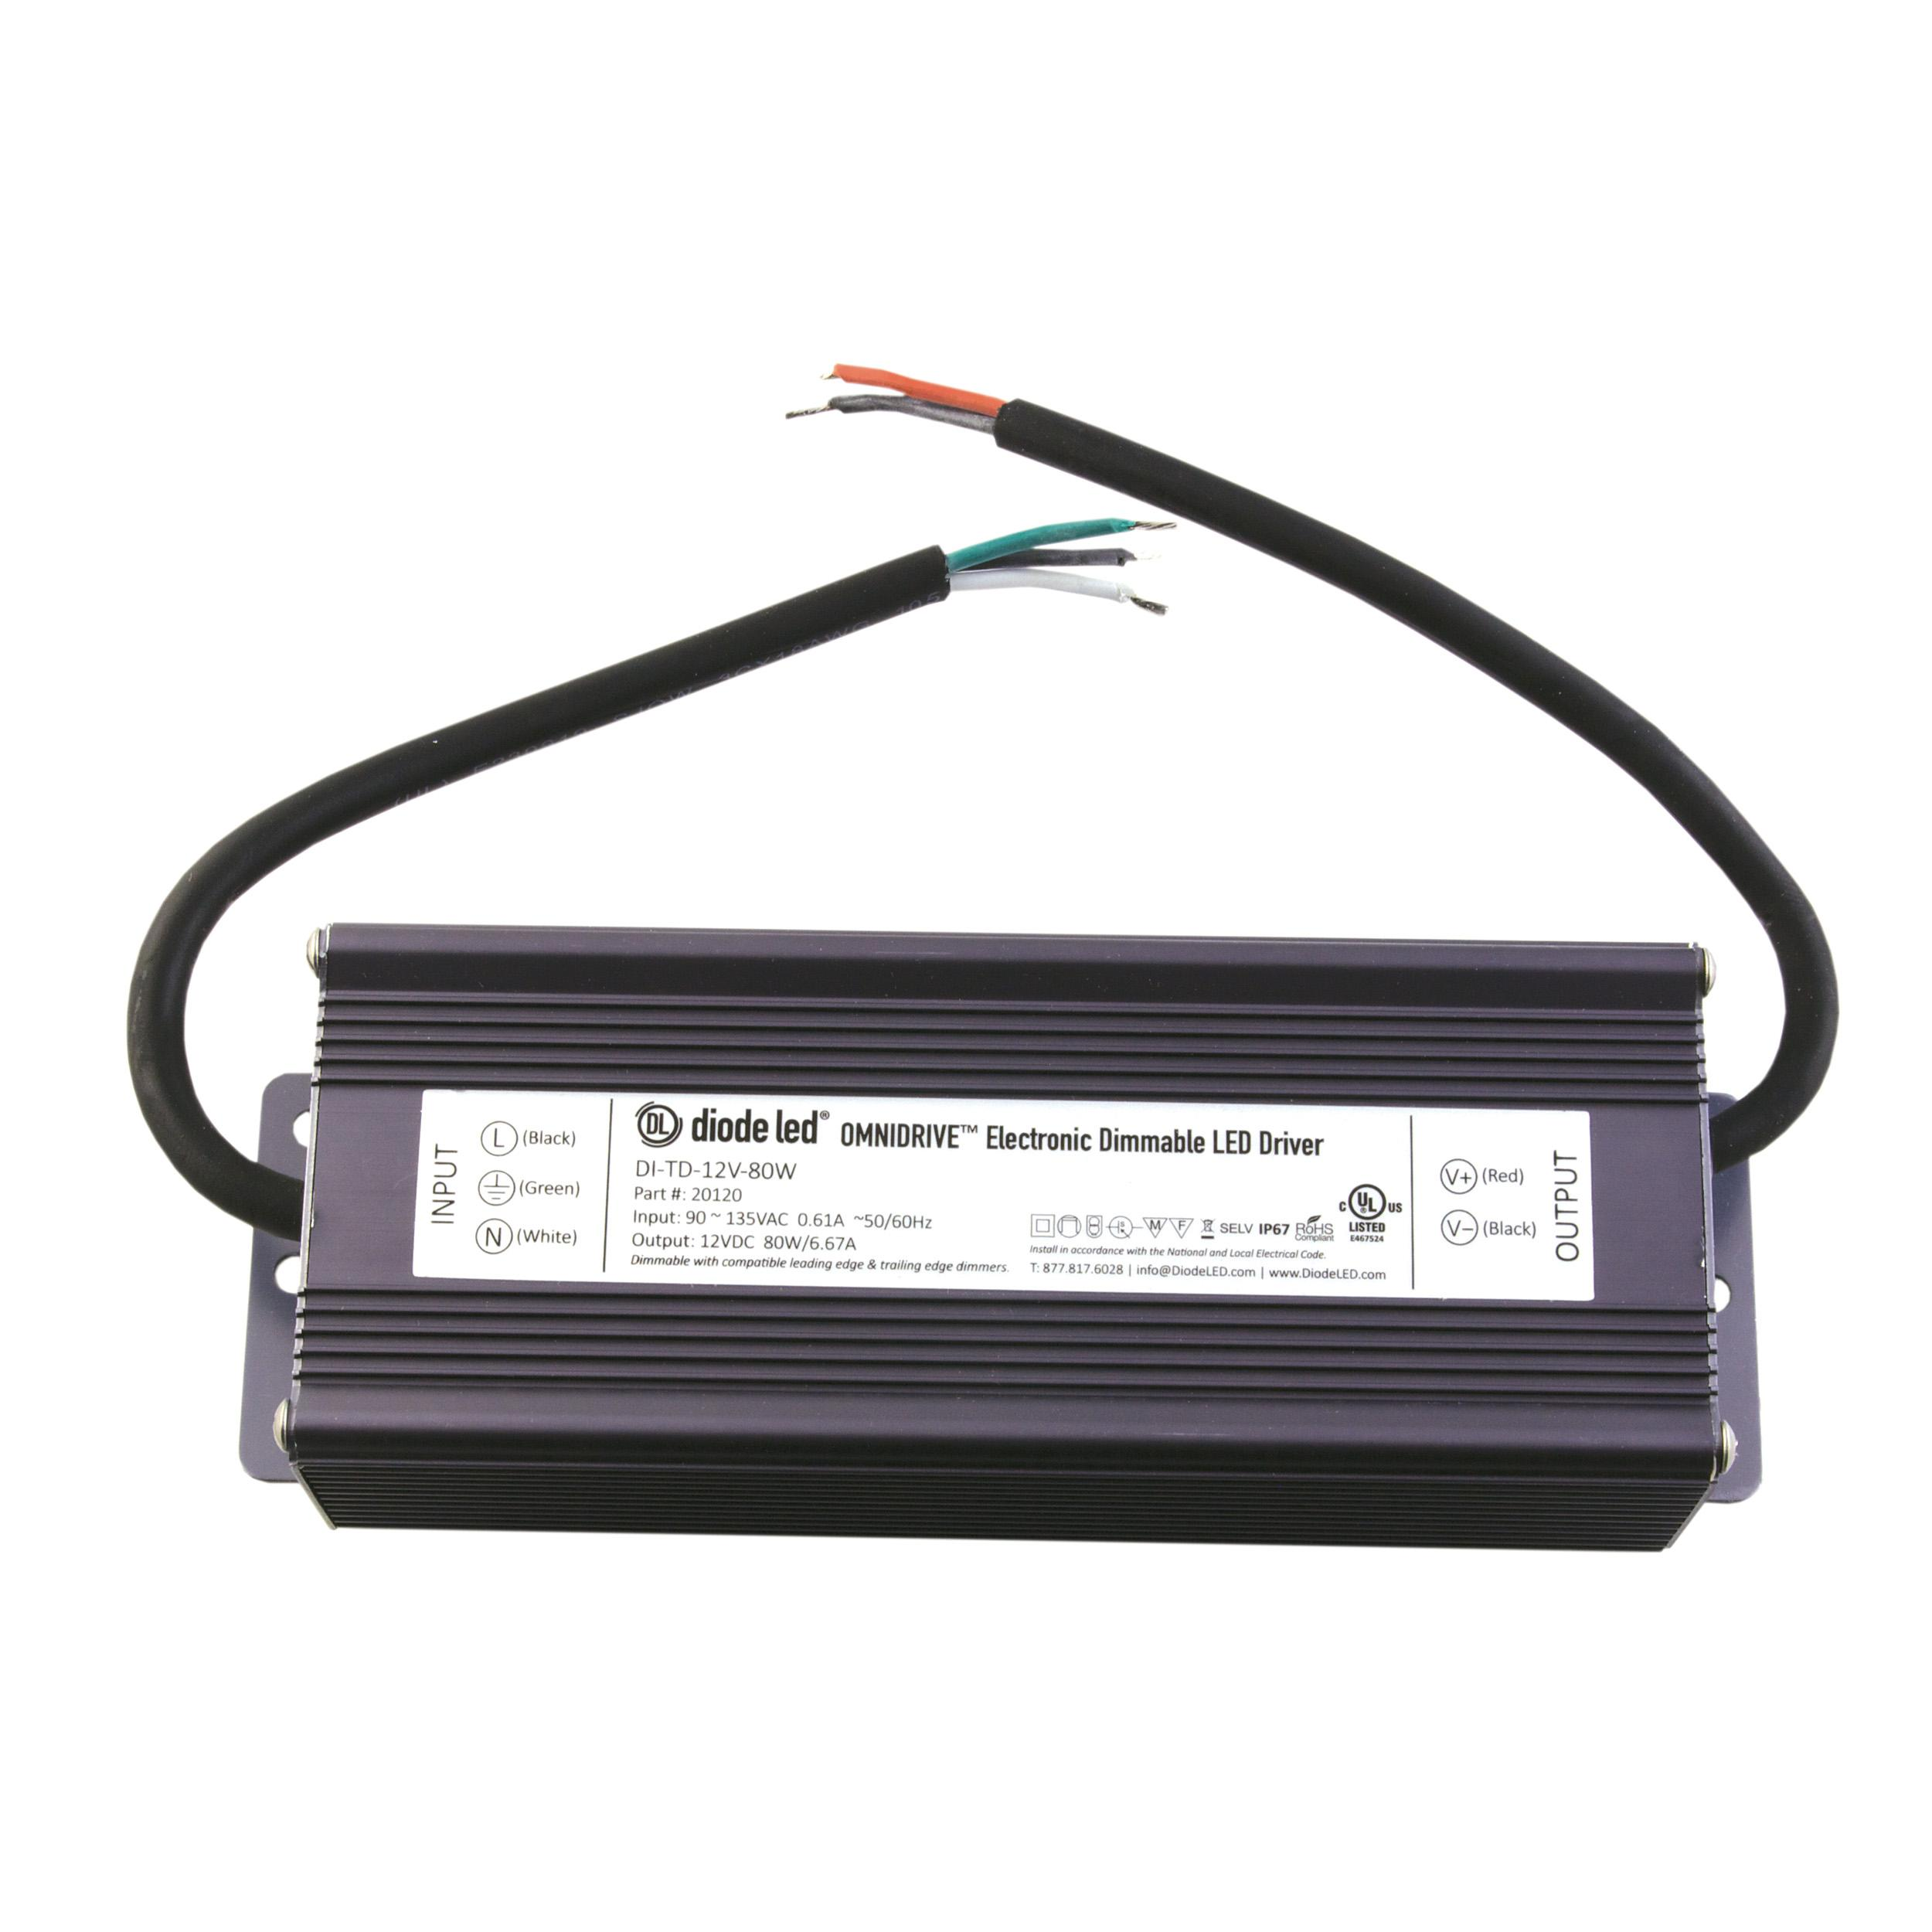 Dimmable Led Power Supplies Omnidrive Electronic Drivers These Are The Pdf Documents Related To 12vdc 120vac Converter